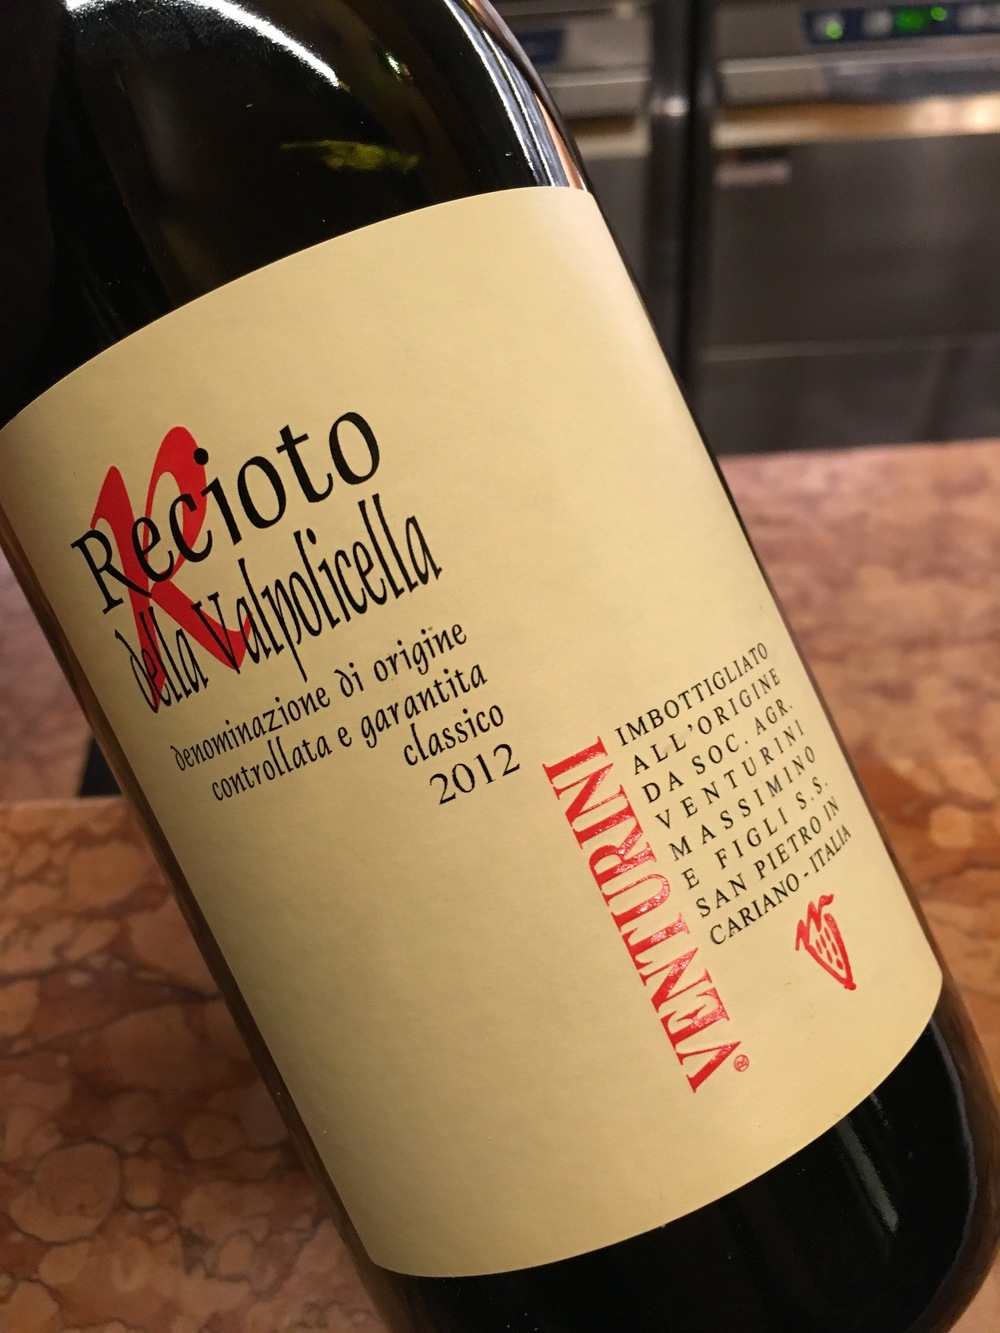 Recioto Valpolicella 2012, Venturini out of Cariano